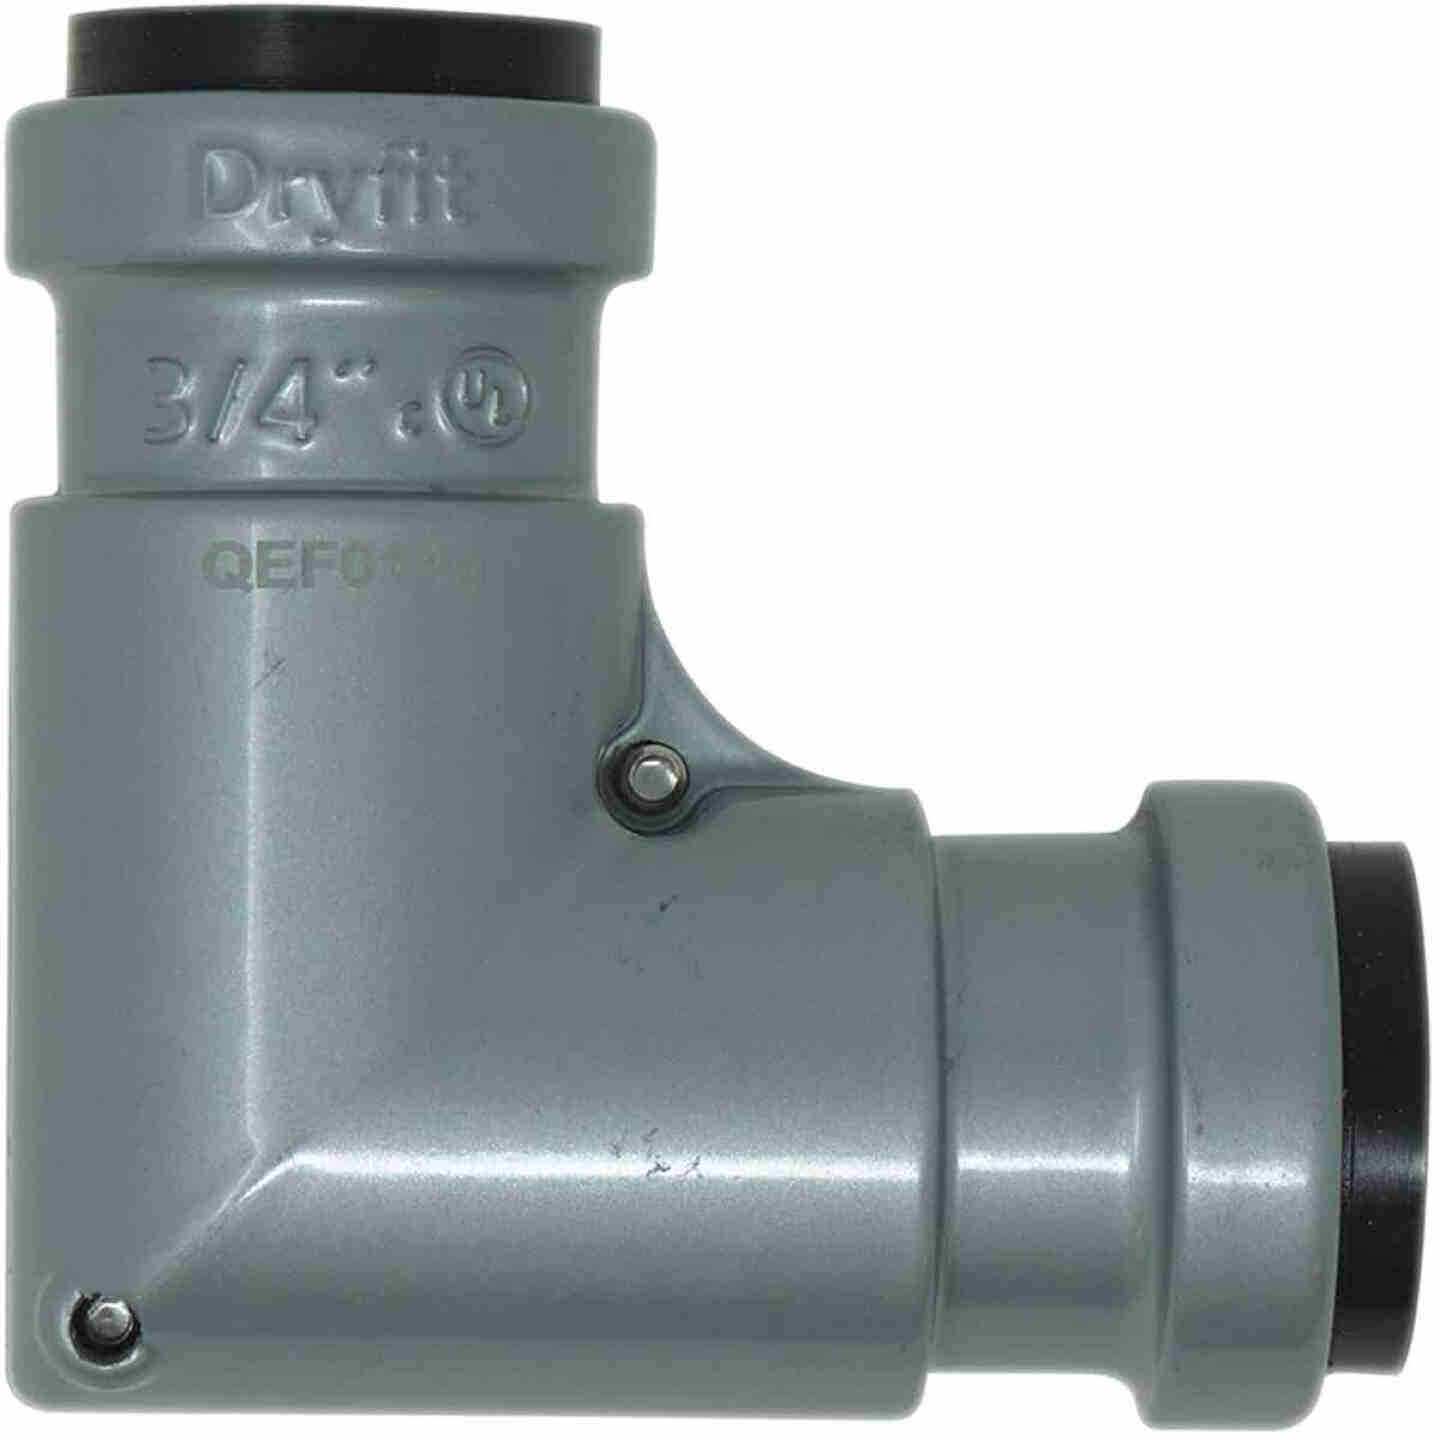 Southwire SimPush 3/4 In. EMT Push-To-Install 90 Deg Inside Elbow Image 1